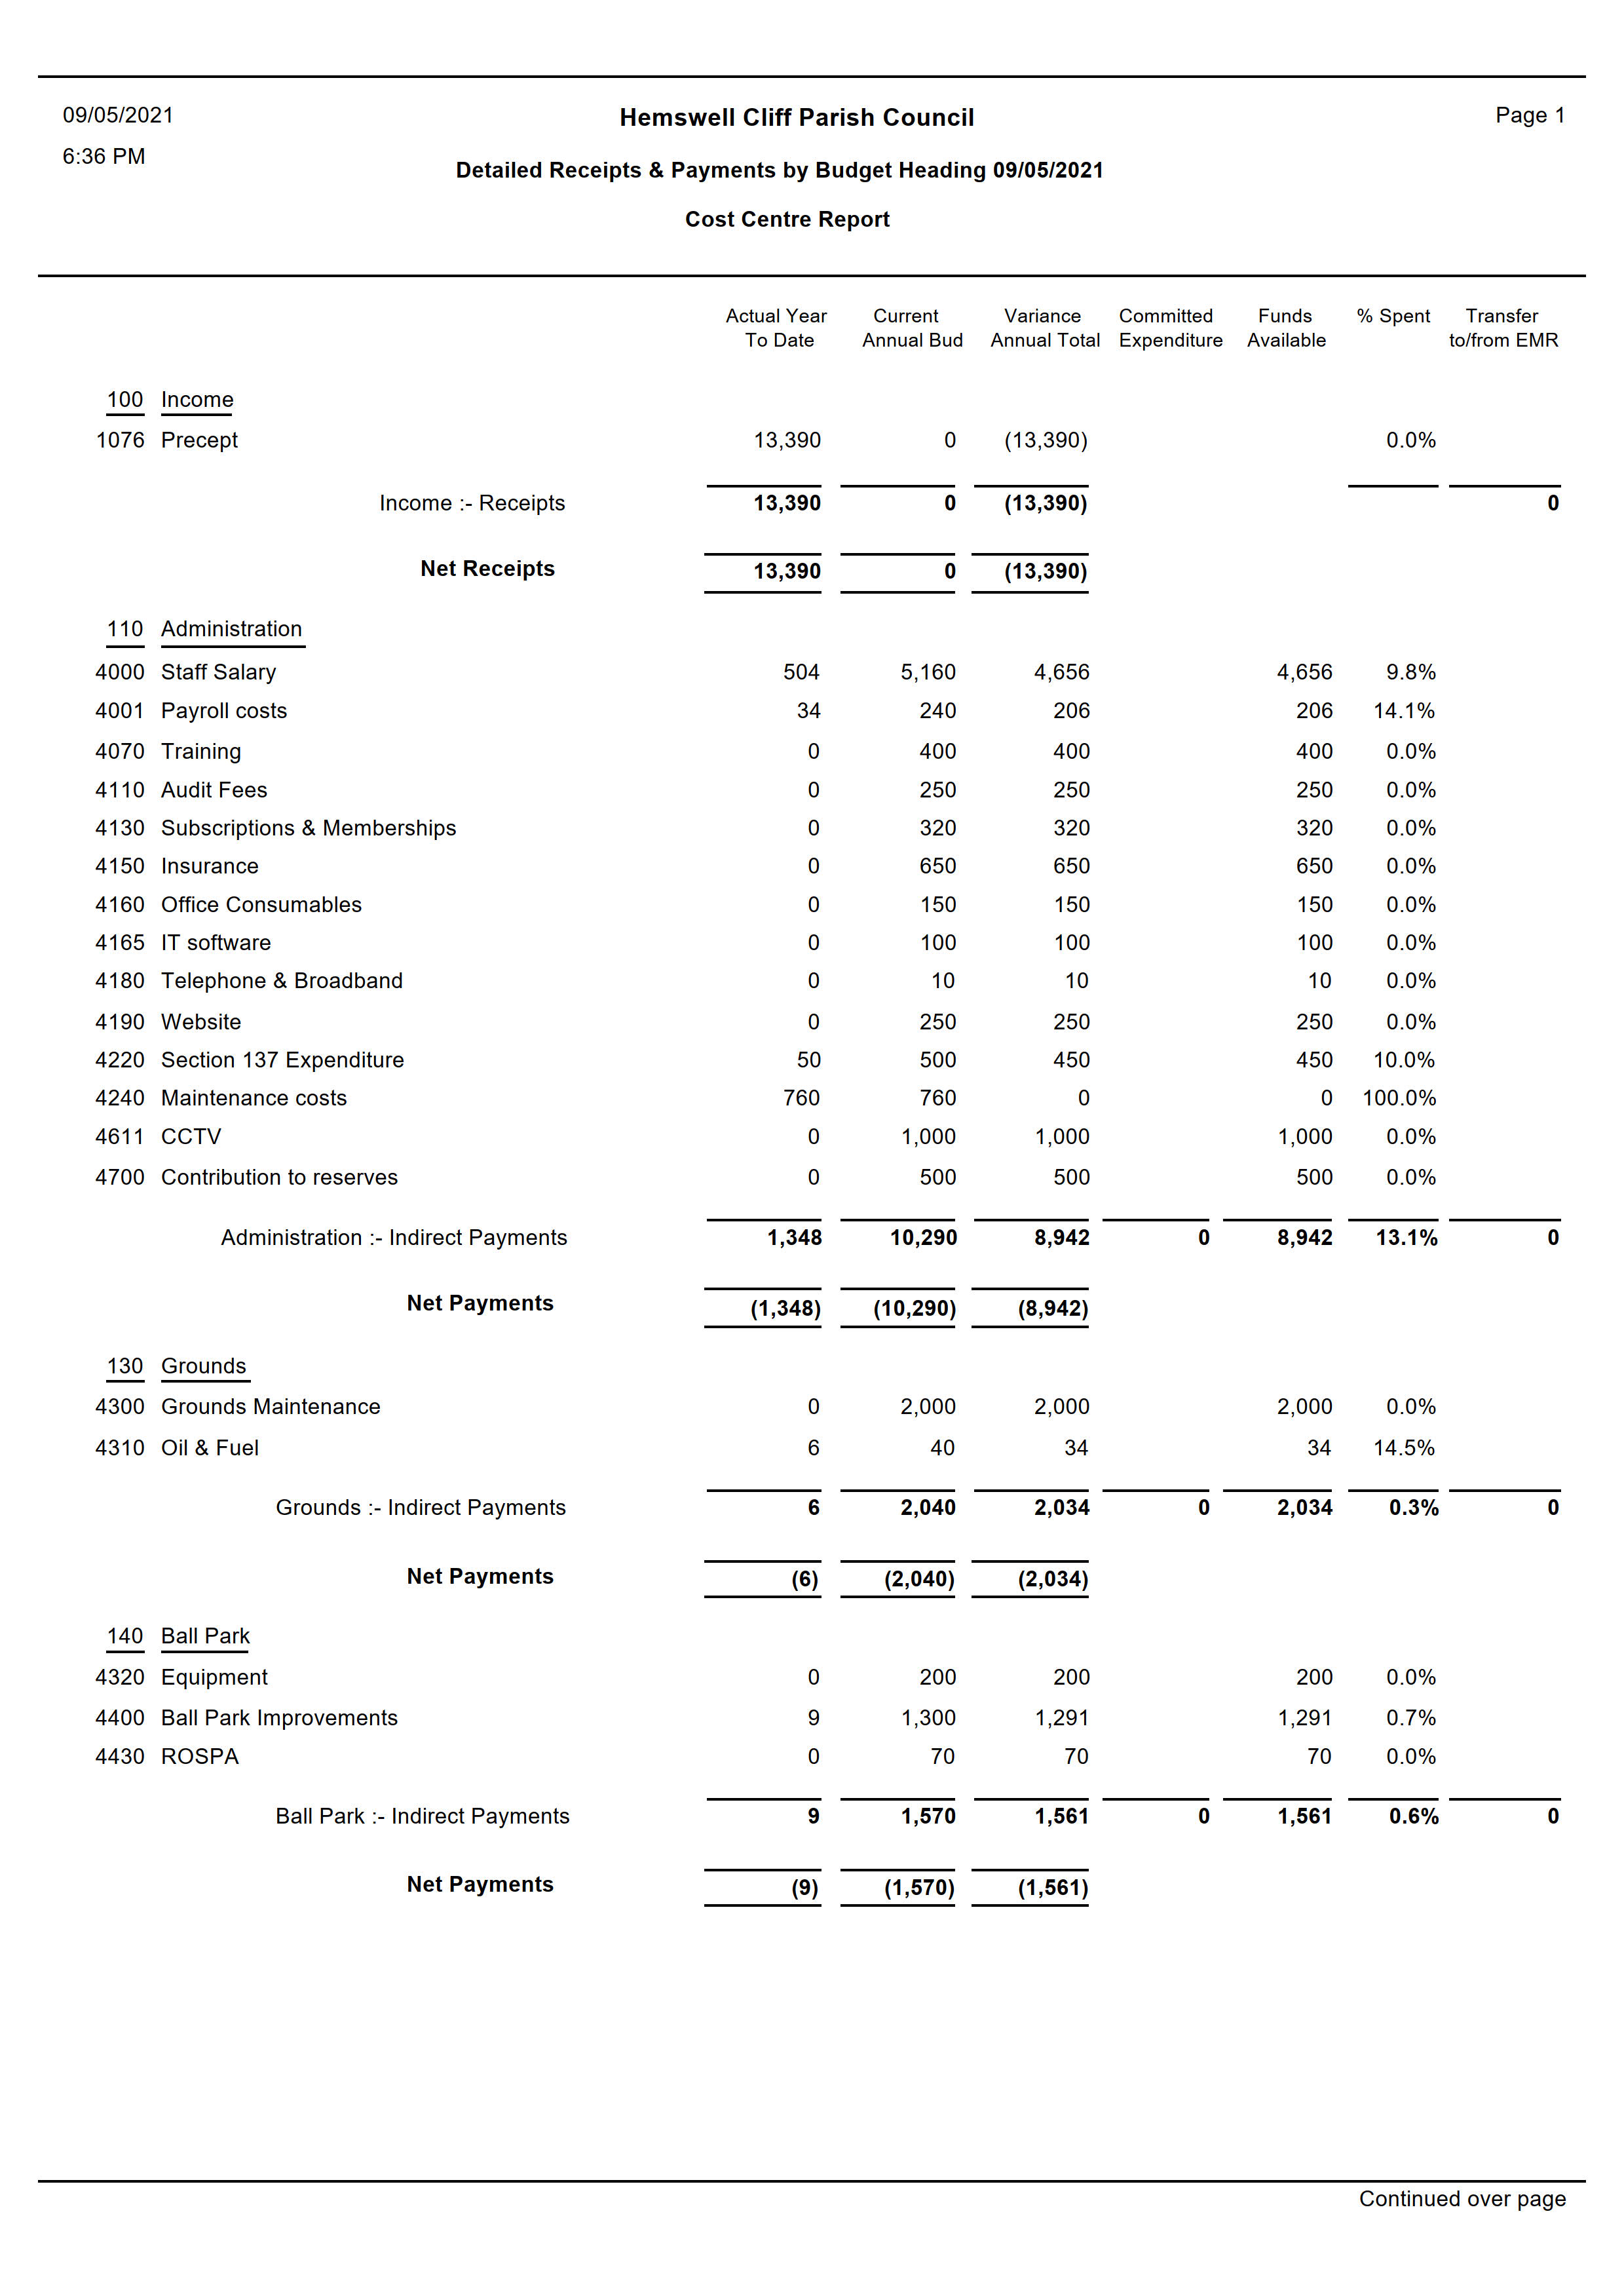 Detailed_Receipts___Payments_by_Budget_Heading_09_05_2021_1.jpg